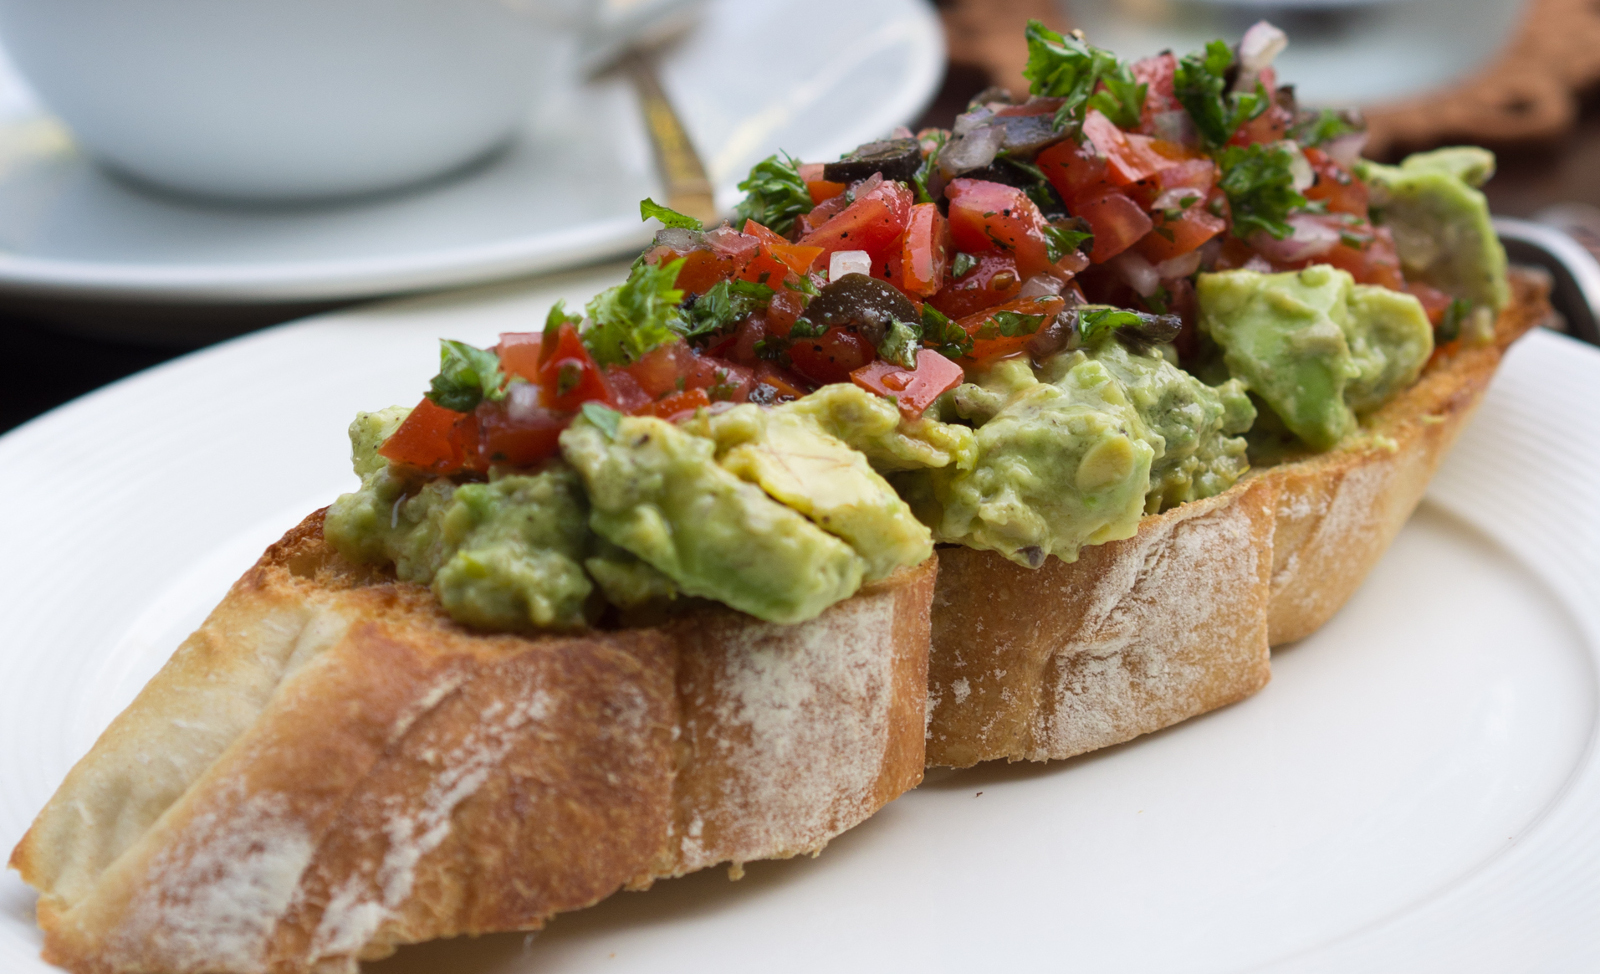 10 Creative Ways To Amp Up Your Avocado Toast Game